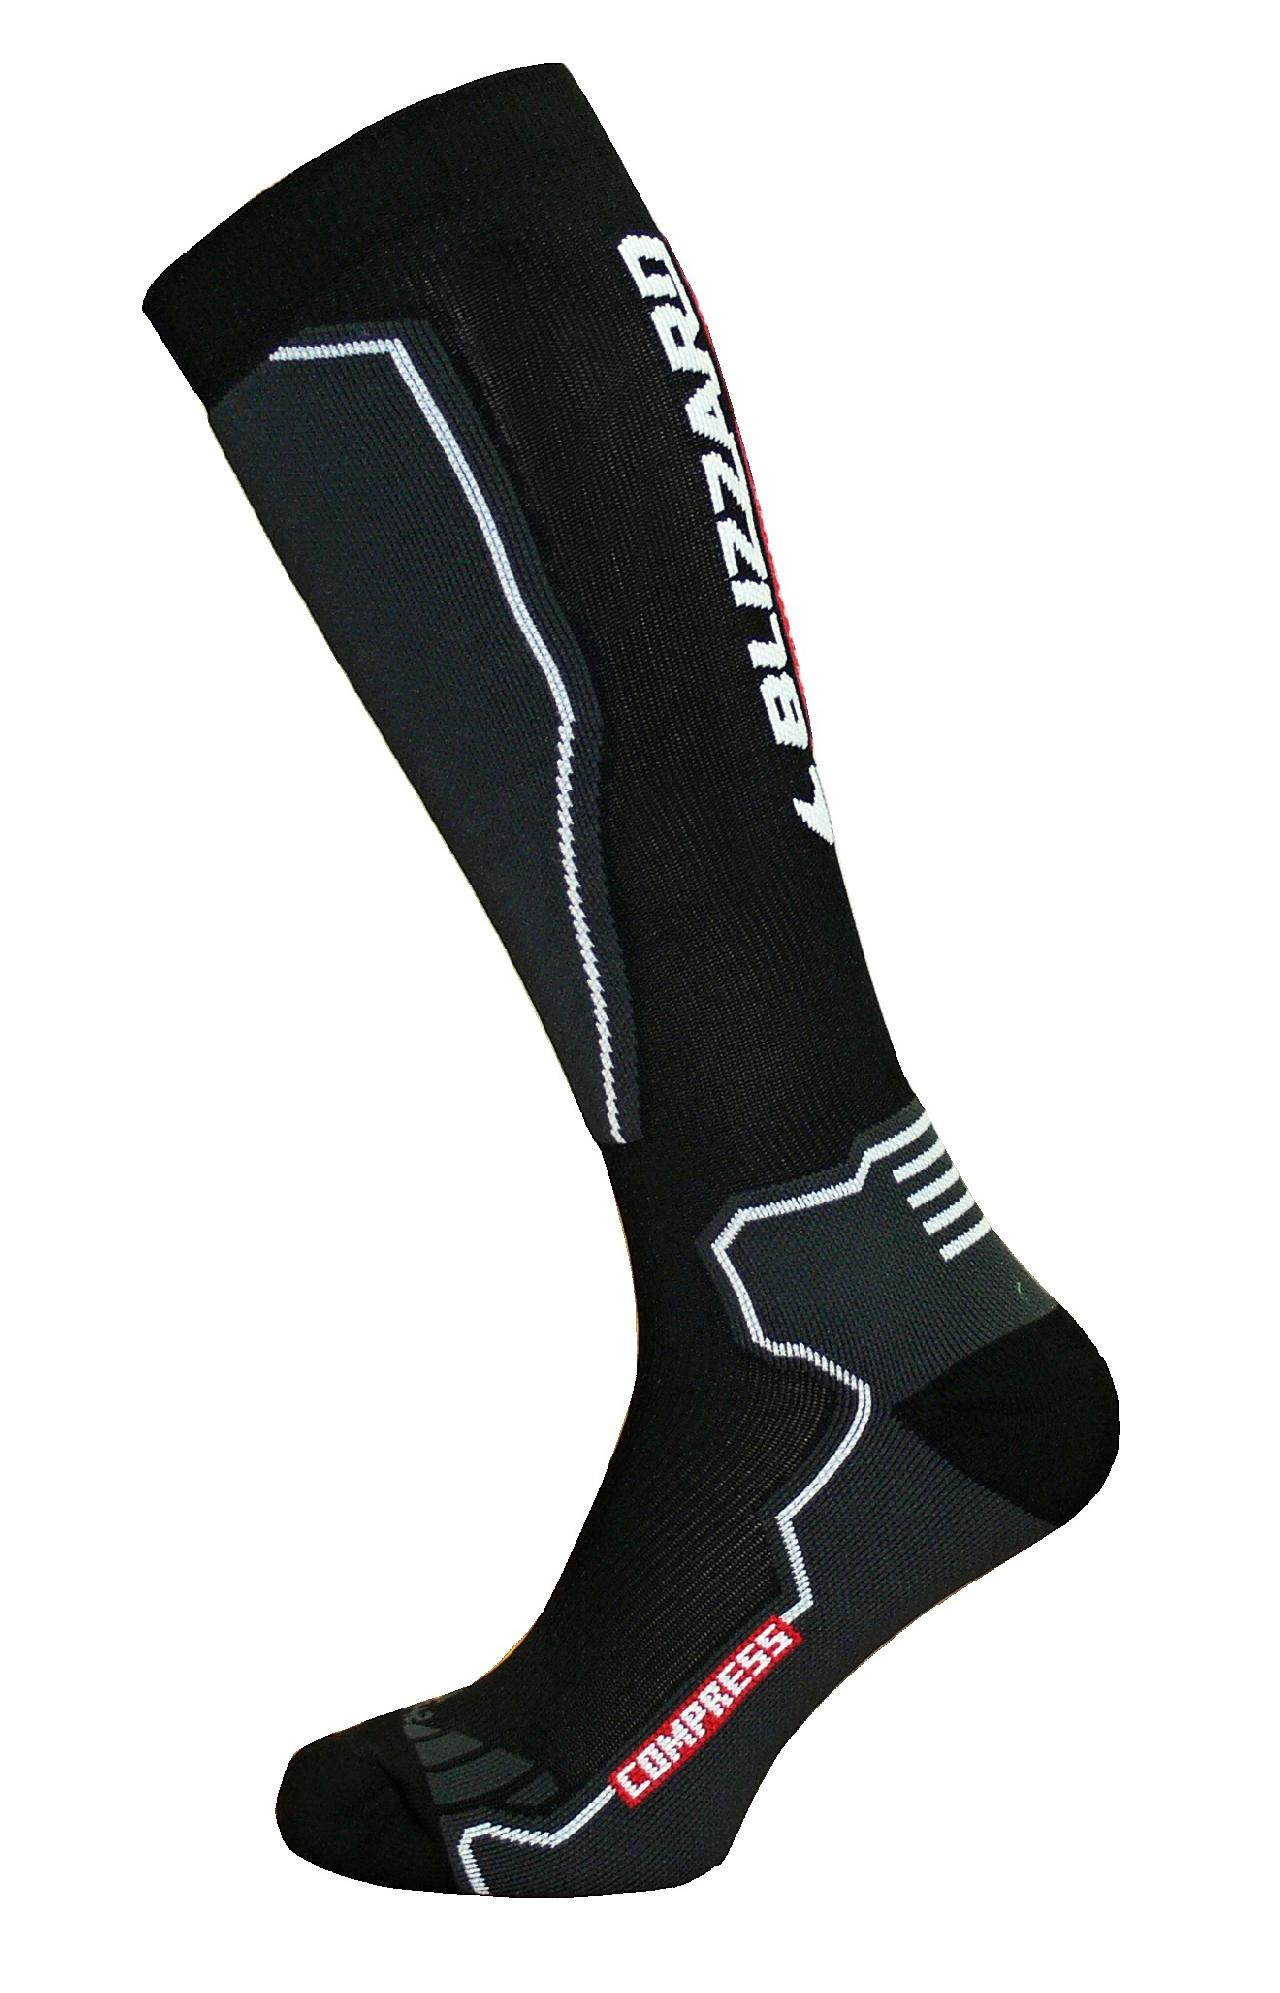 BLIZZARD Compress ski socks black/grey